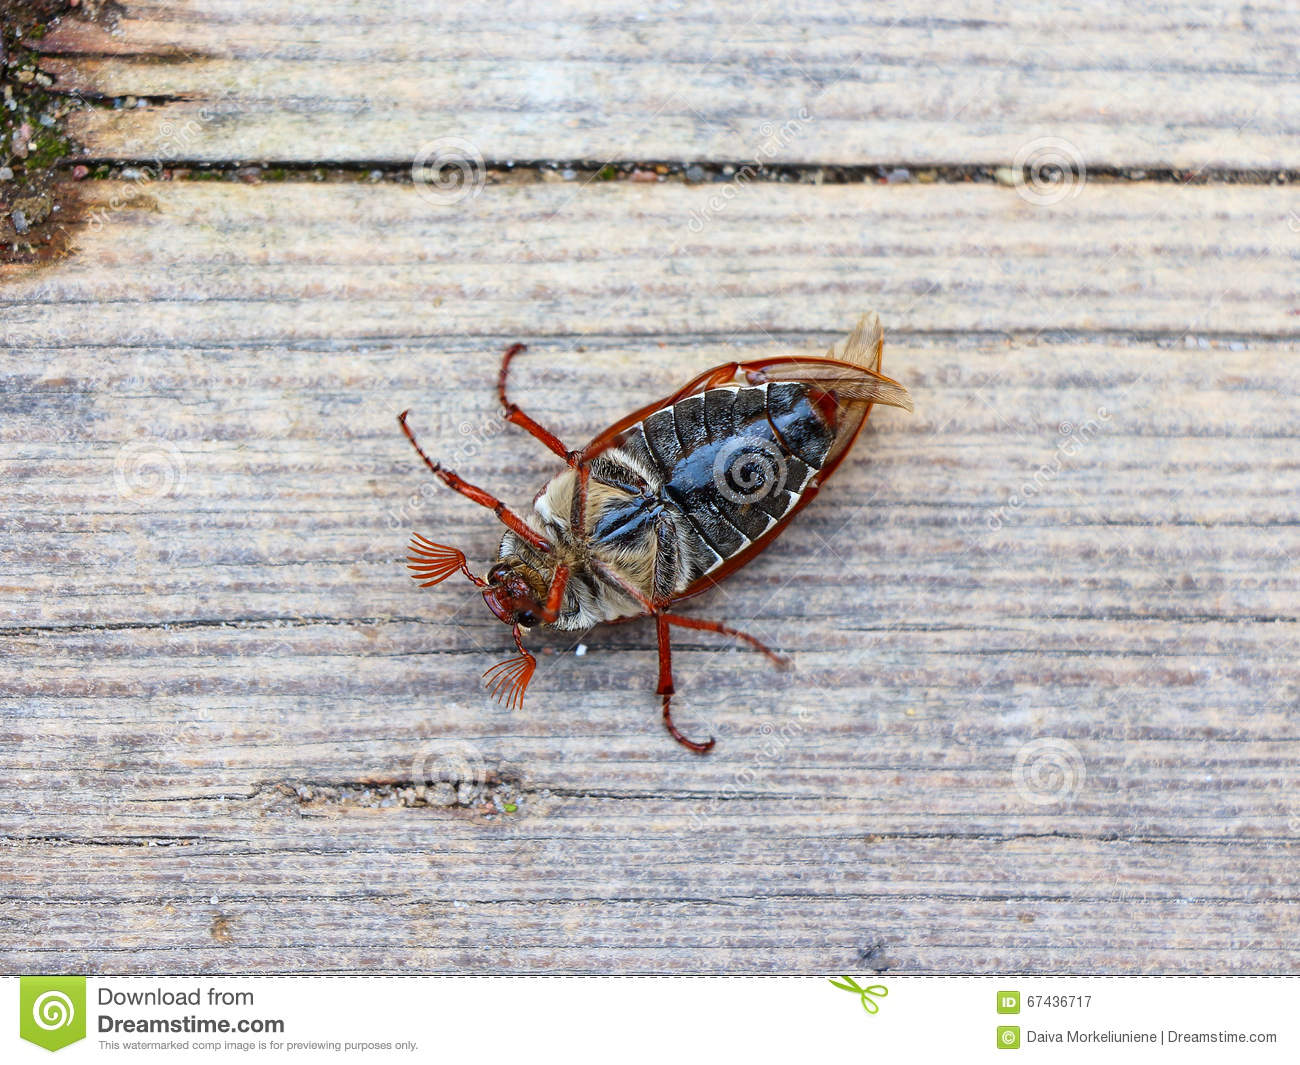 June bug stock image  Image of male, melolontha, june - 67436717